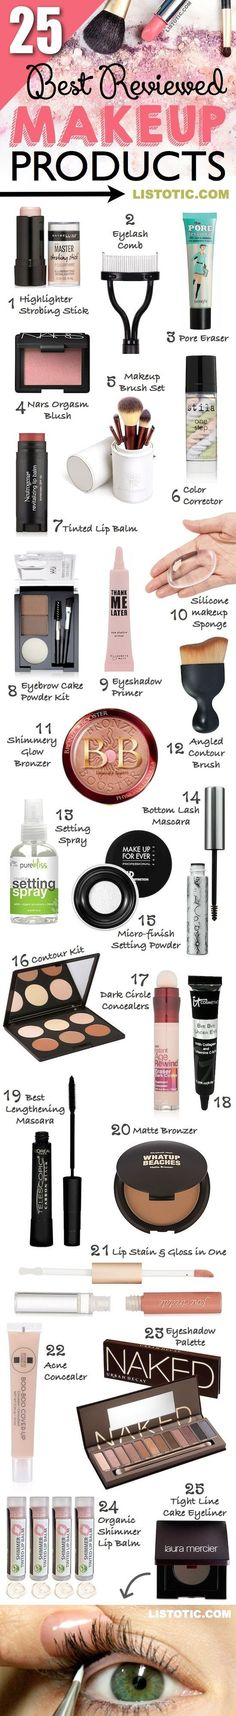 The 25 best reviewed makeup products for beginners and professionals! Most of these are low cost and can be found at most drugstores or even Amazon! | Listotic.com 2017